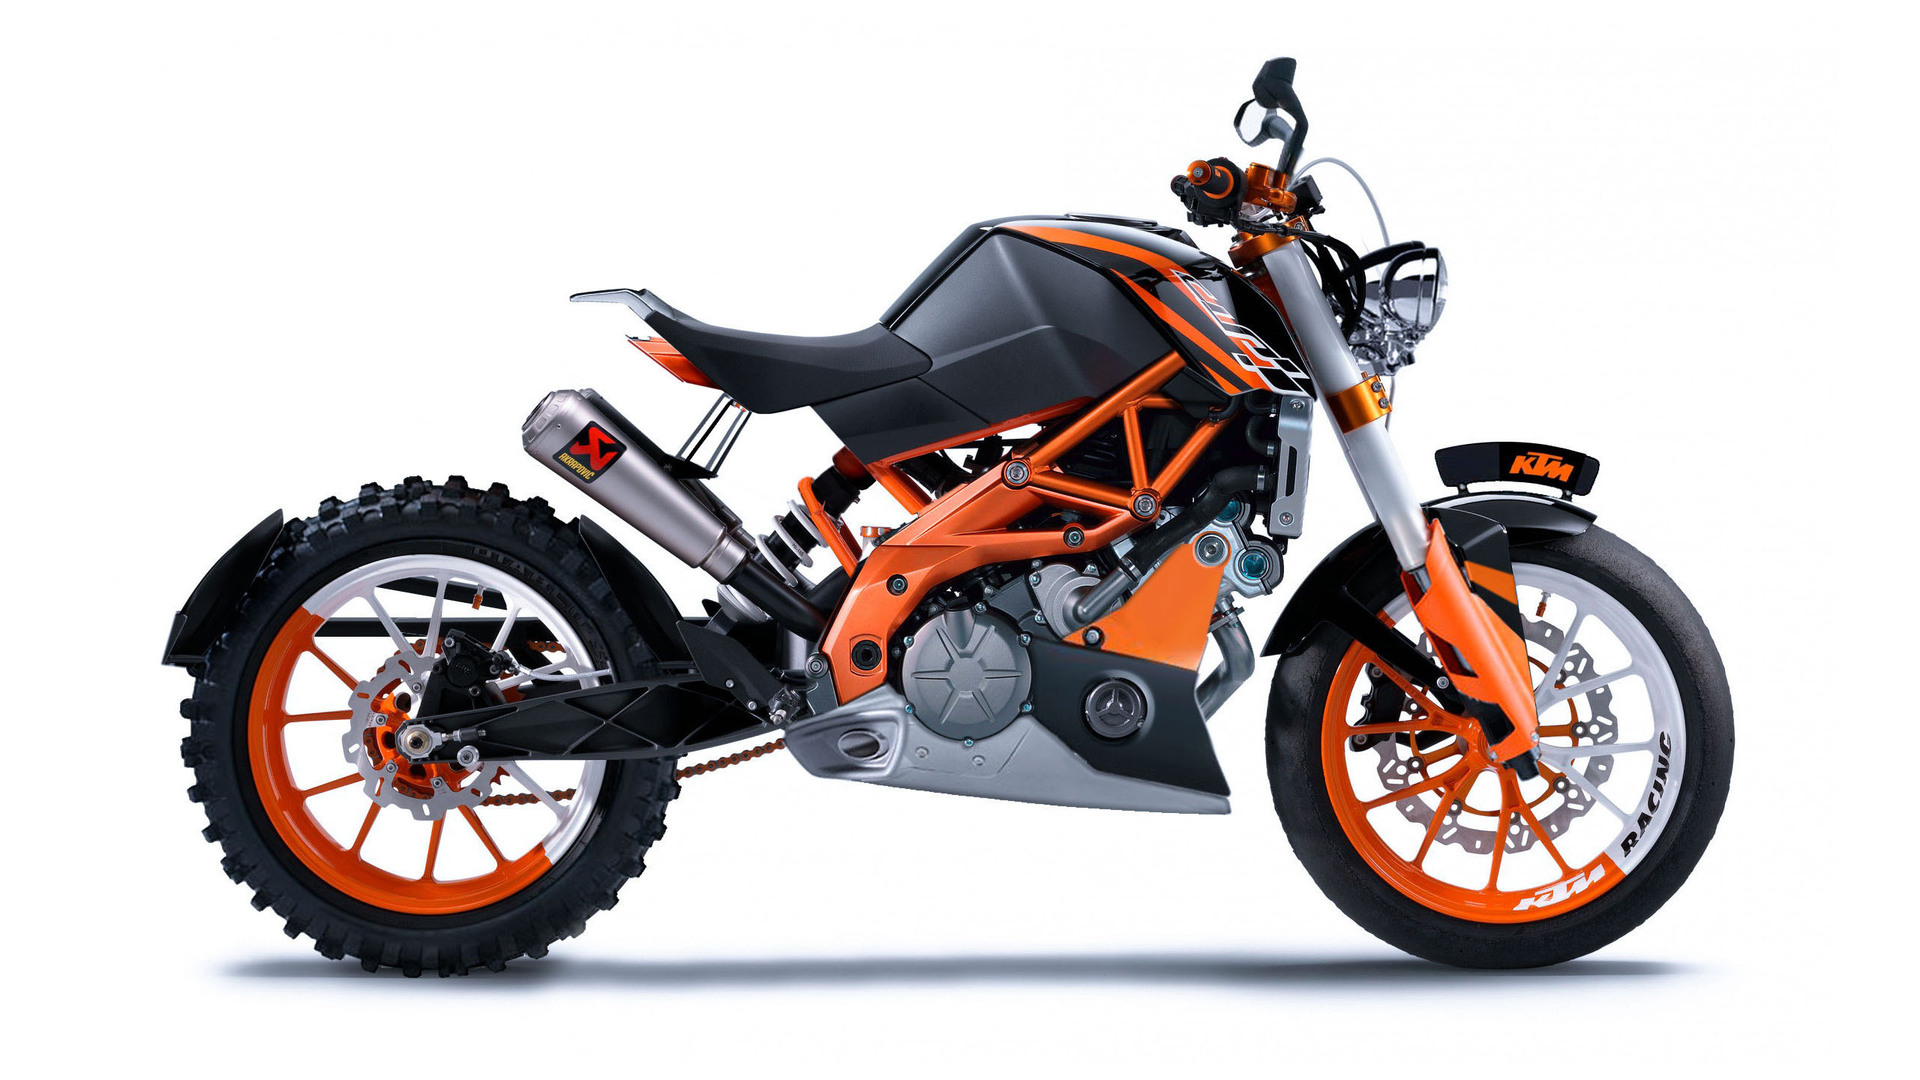 1920x1080 Ktm Duke 125cc Laptop Full Hd 1080p Hd 4k